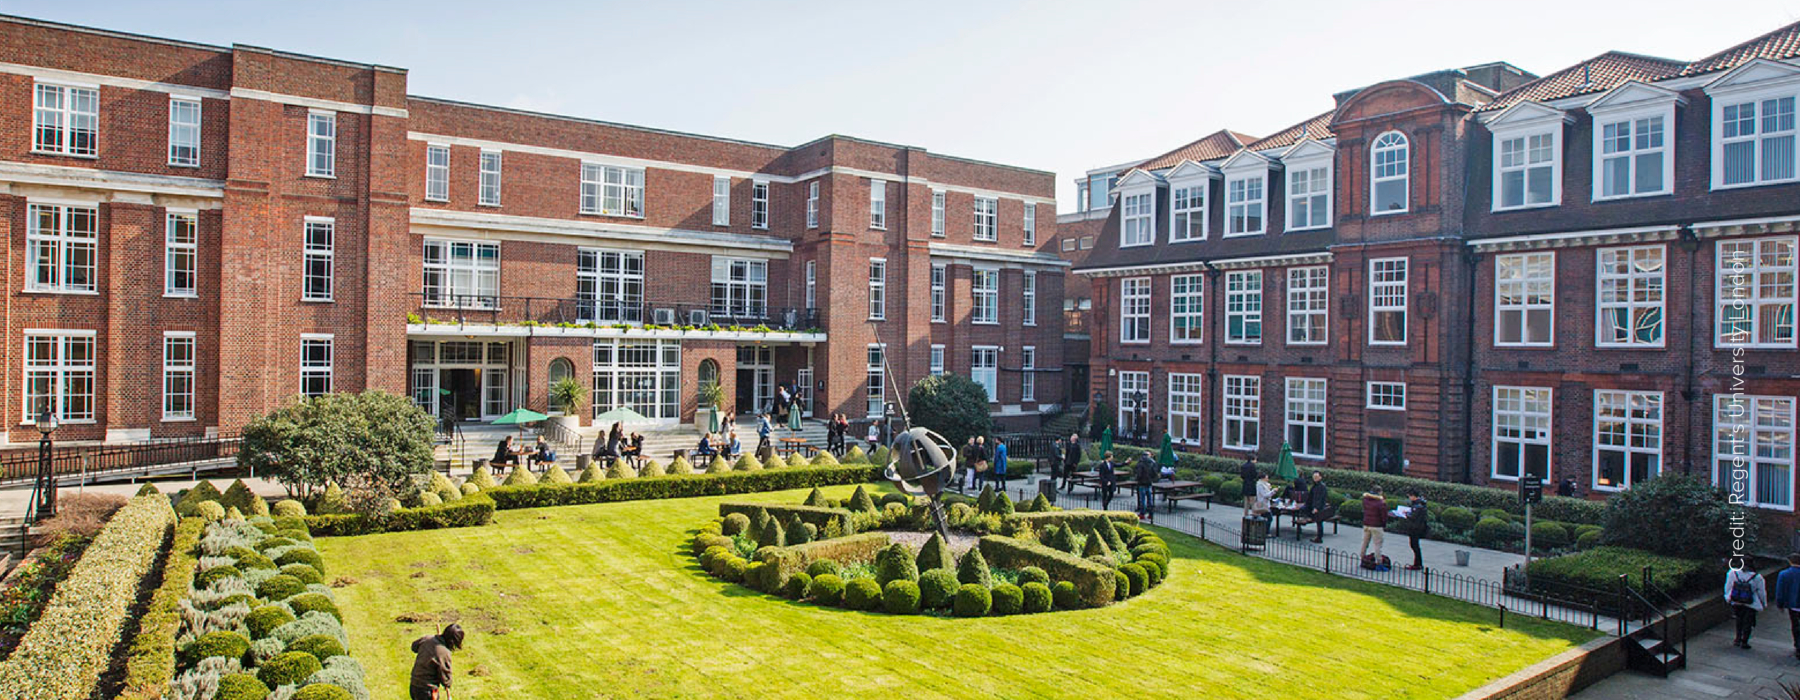 Regent's University London case study header desktop